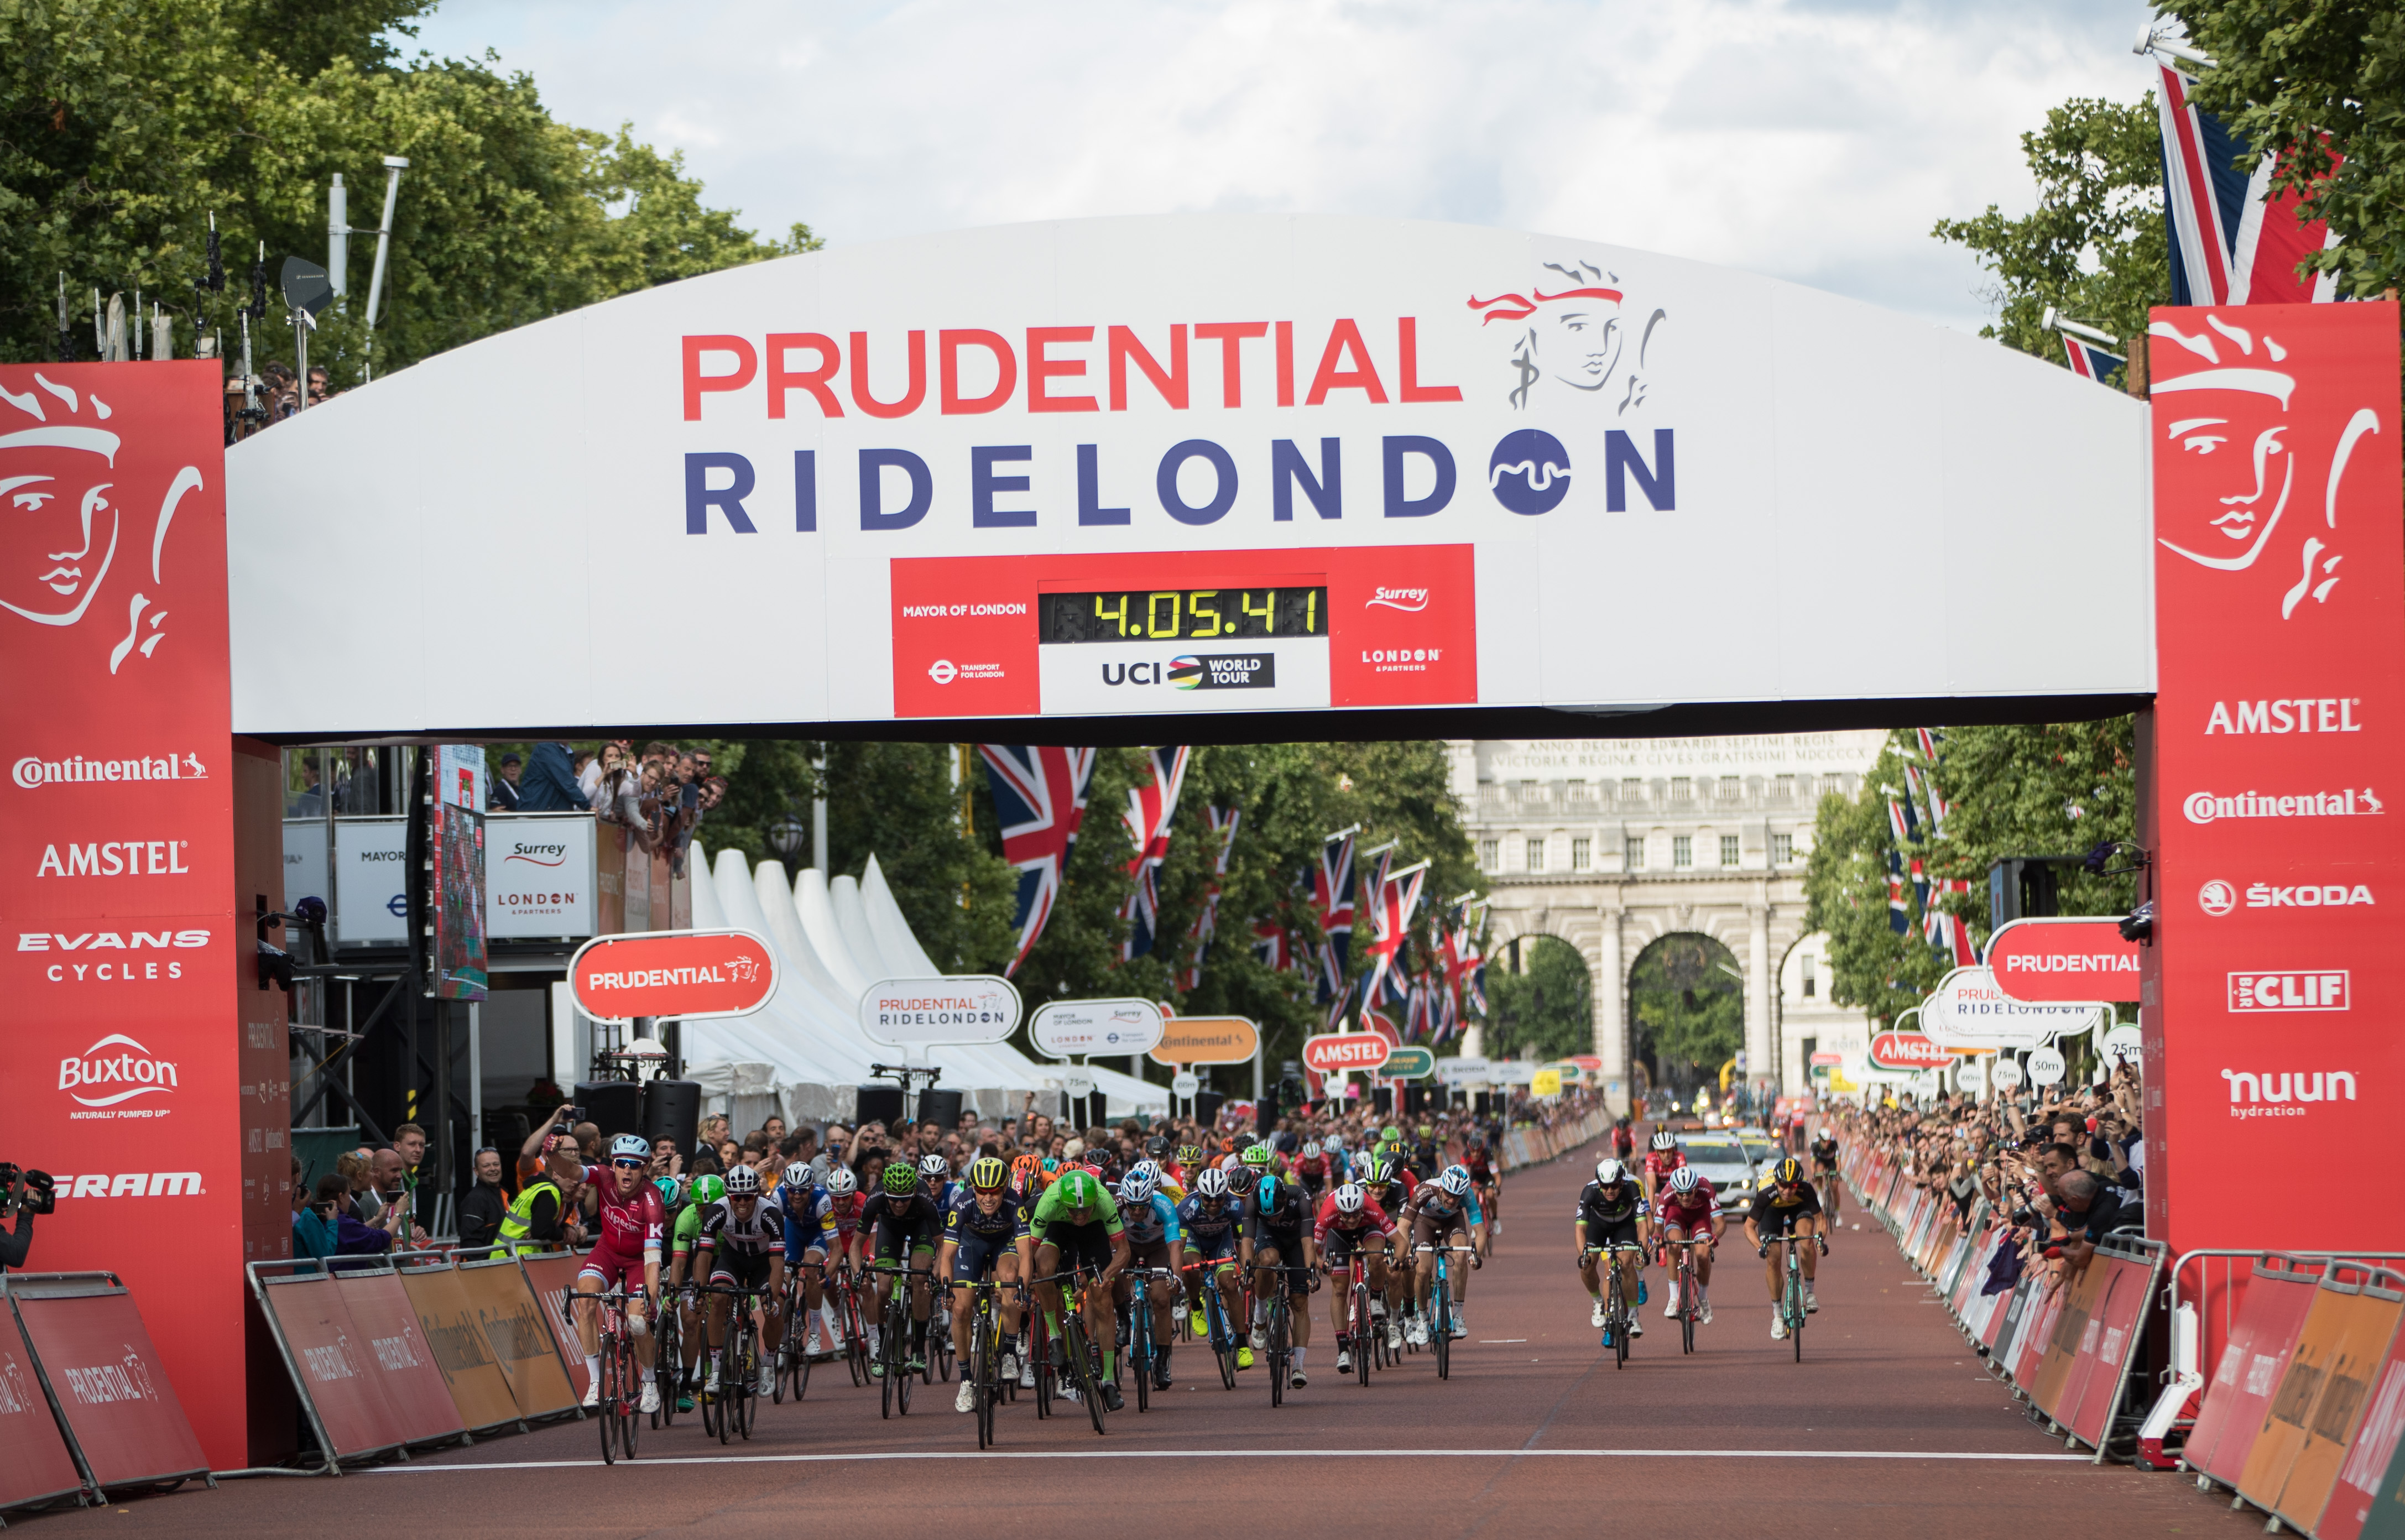 Credit Prudential RideLondon when using this photo